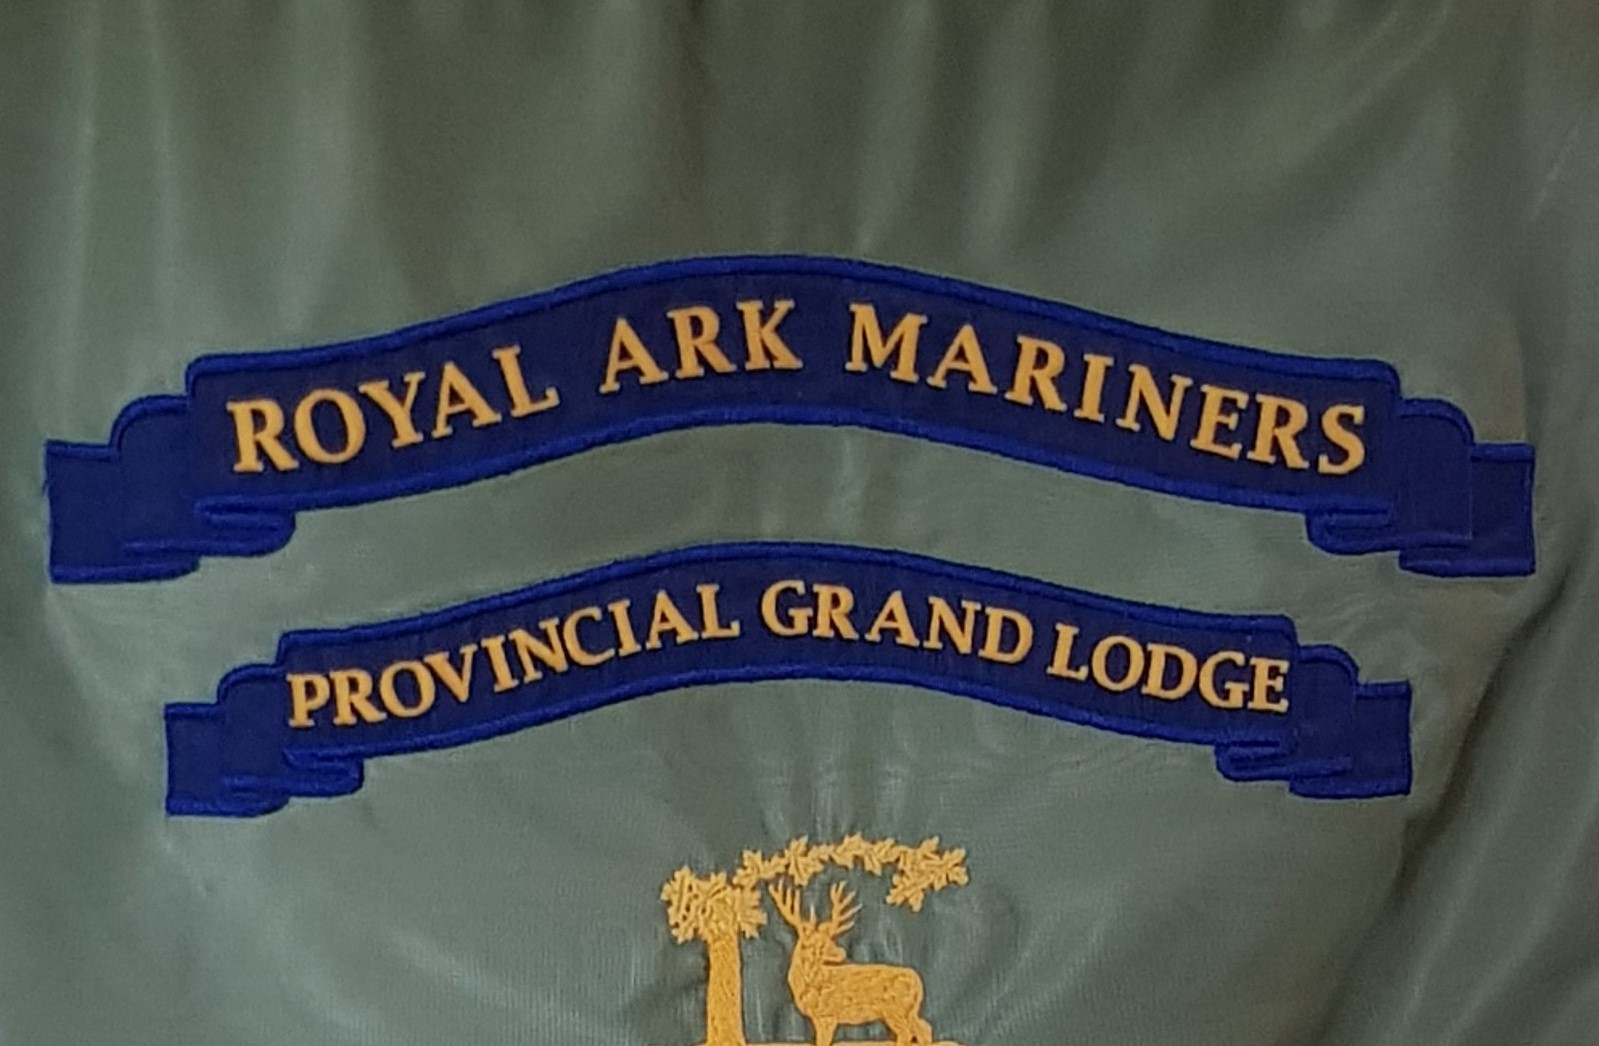 Royal Ark Mariner Degree Microsite